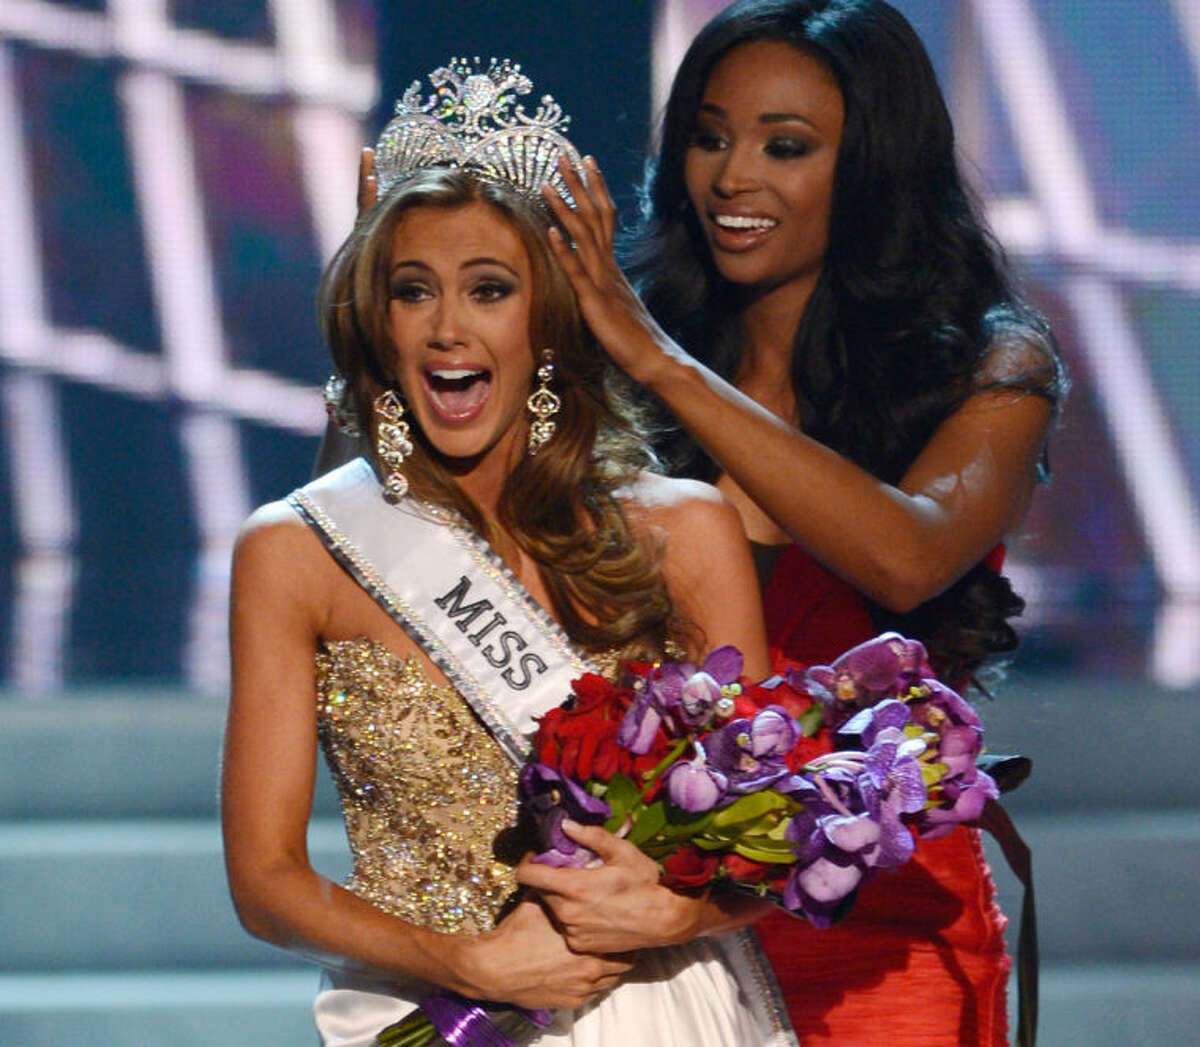 FILE - In this Sunday, June 16, 2013, file photo, Miss Connecticut Erin Brady is crowned the winner of the Miss USA 2013 pageant by Nana Meriwether in Las Vegas. Brady, of South Glastonbury, Conn., relinquishes her crown Sunday, June 8, 2014, when the 2014 pageant competition being held in Baton Rouge, La., selects a new Miss USA. (AP Photo/Jeff Bottari, File)